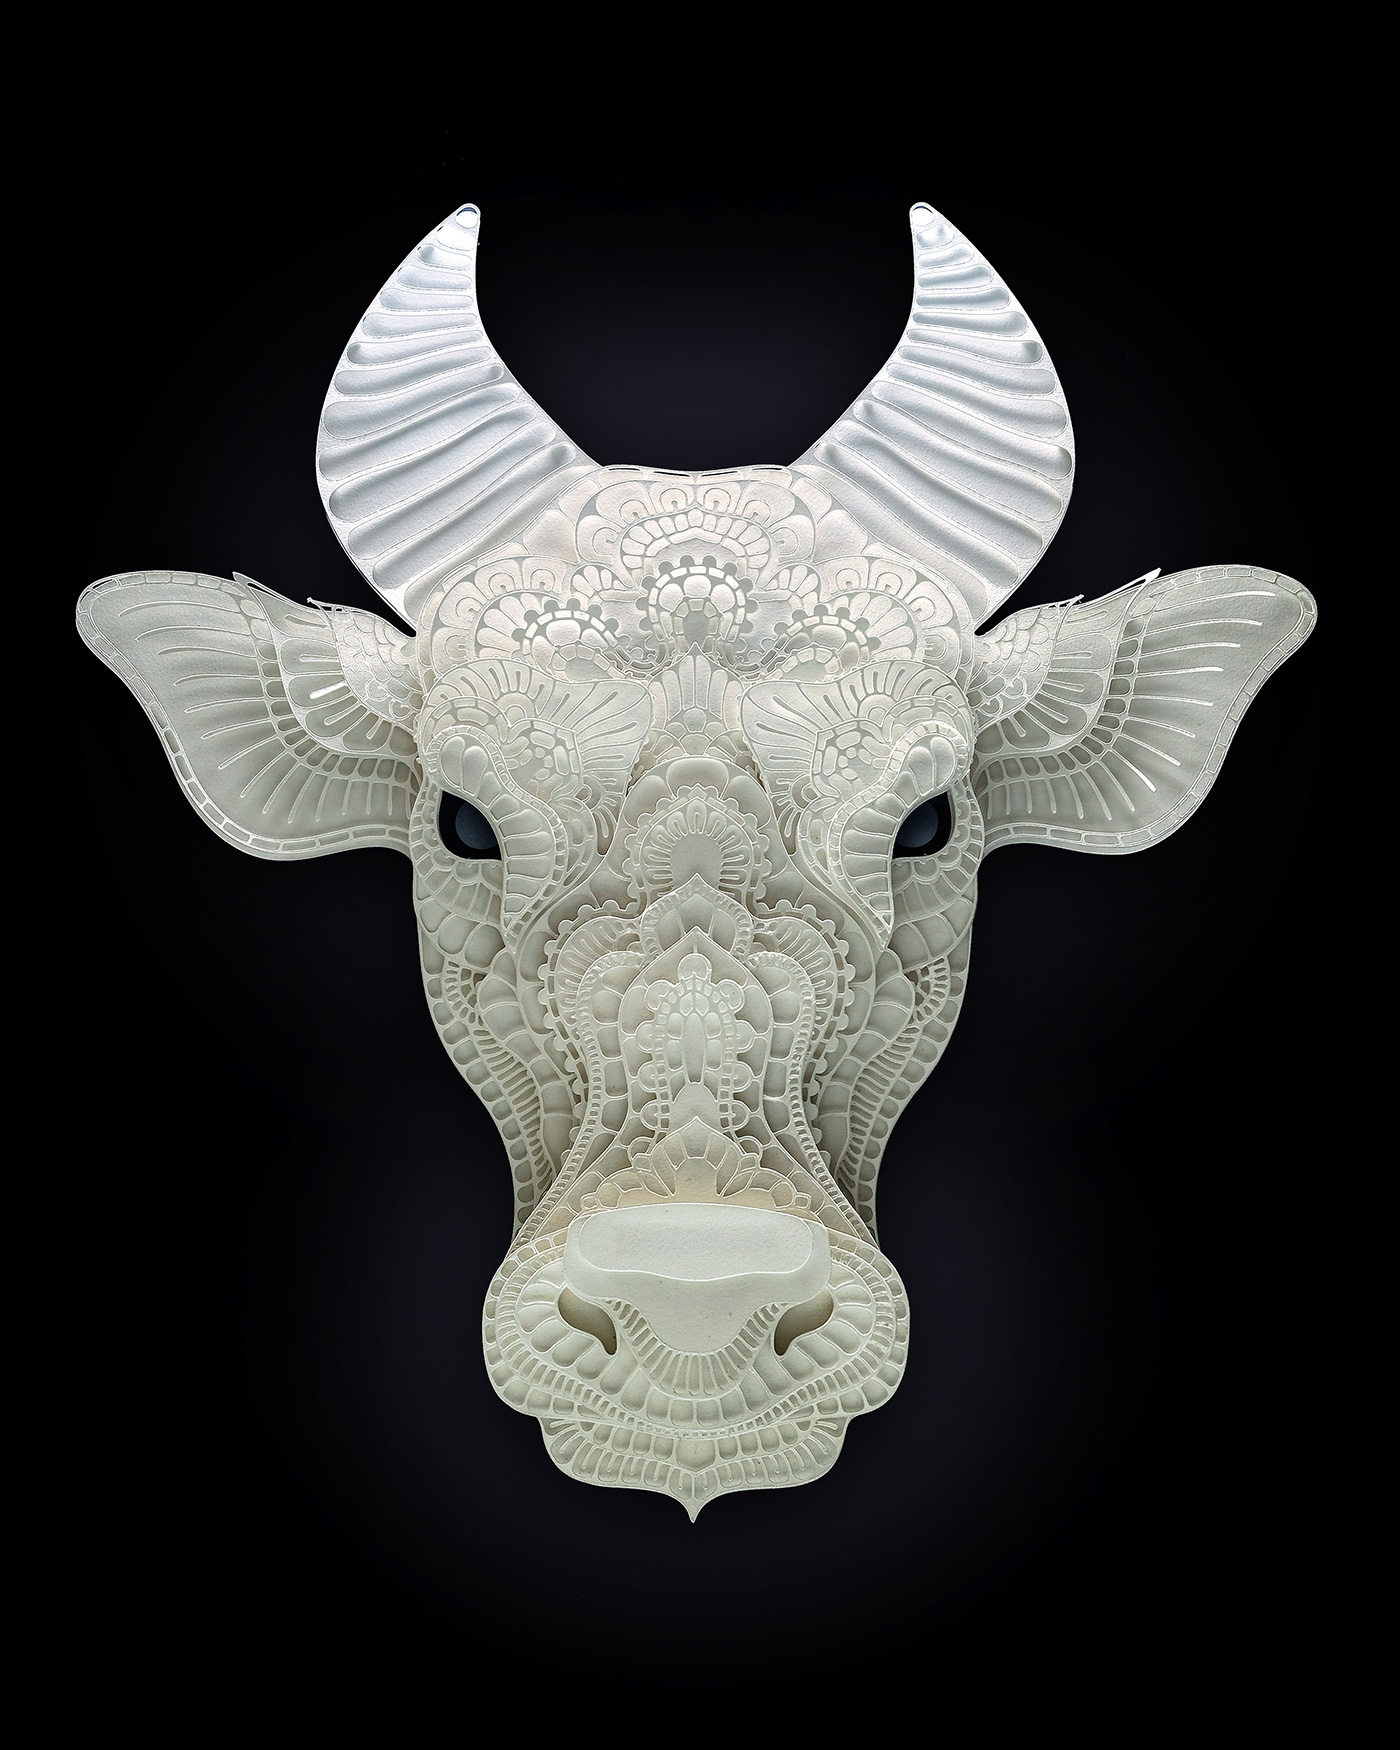 Impressive Papercuts of Endangered Species